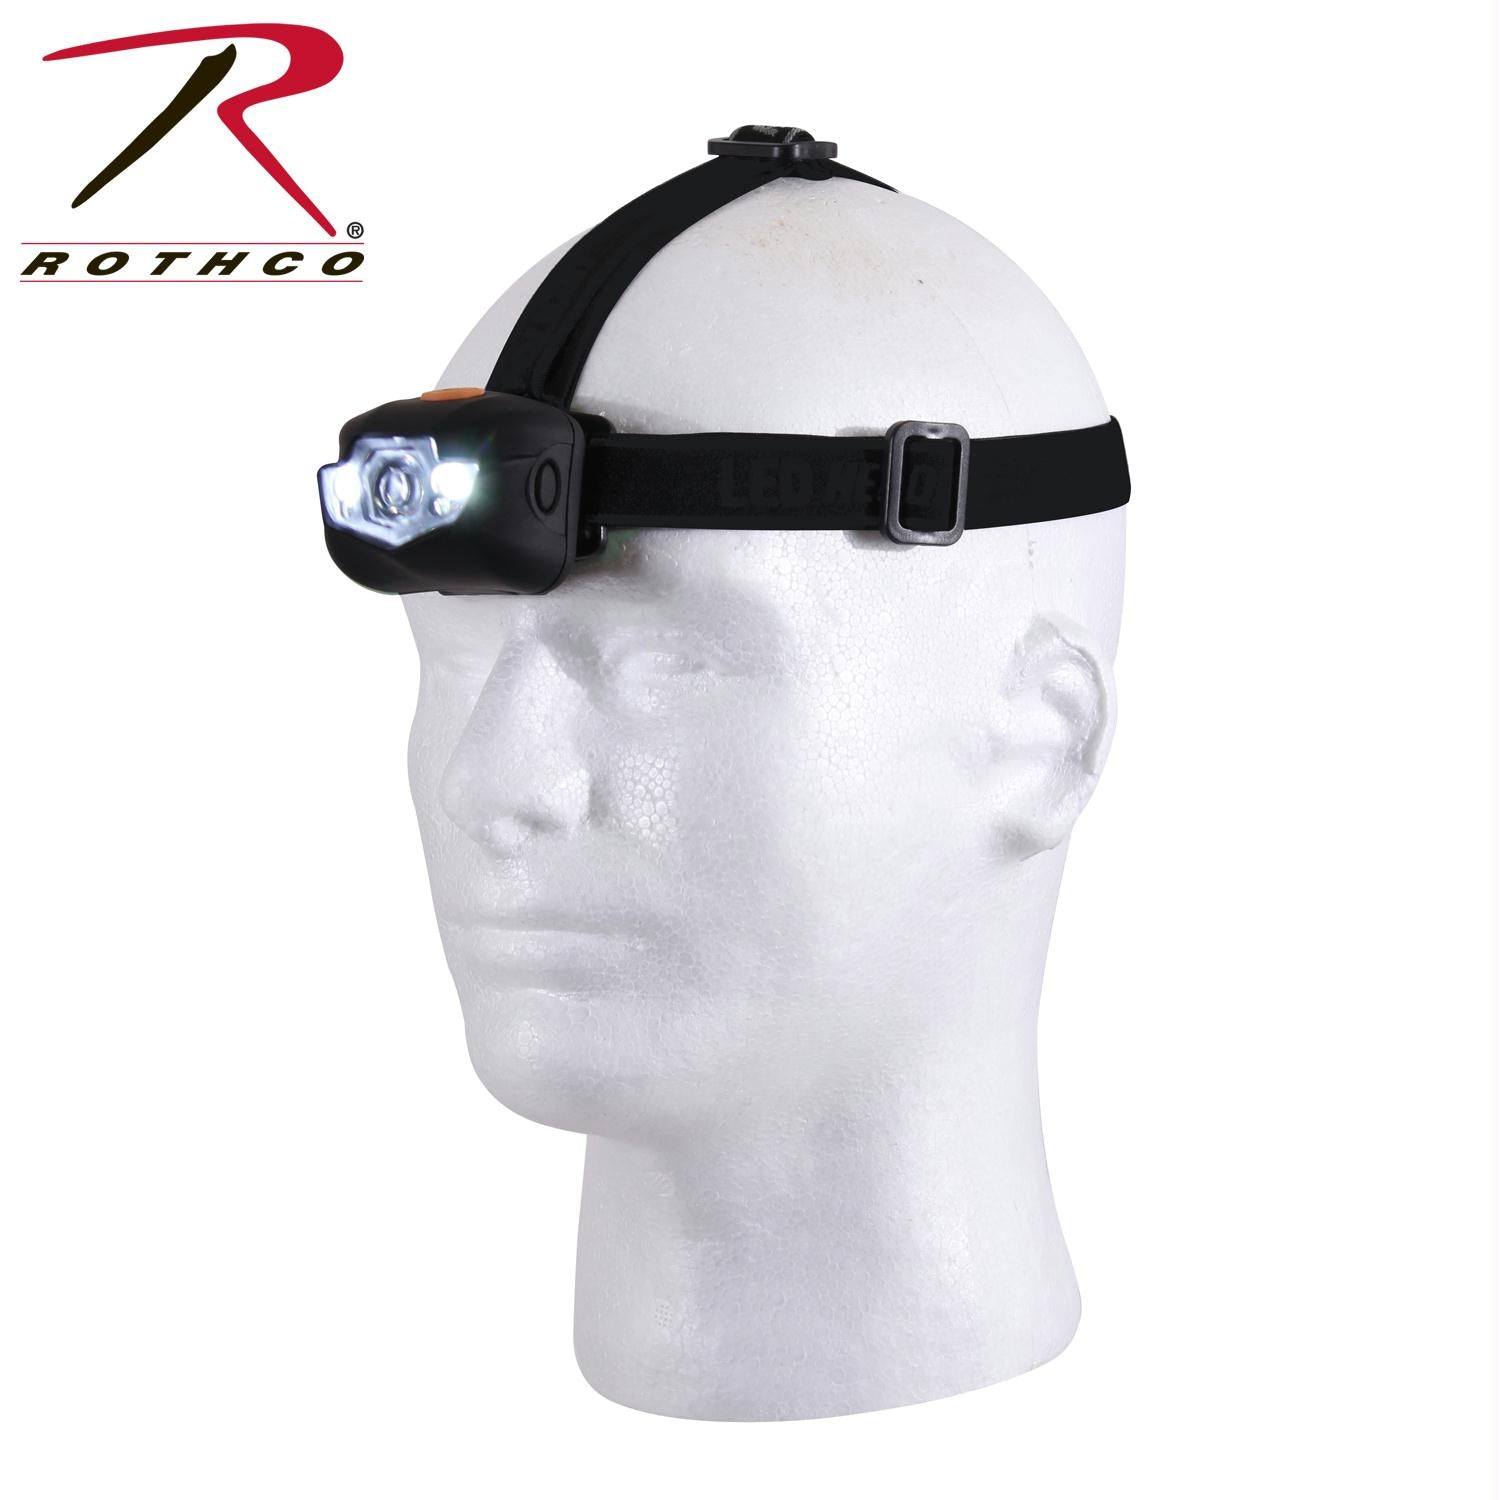 Rothco LED Headlamp - Black